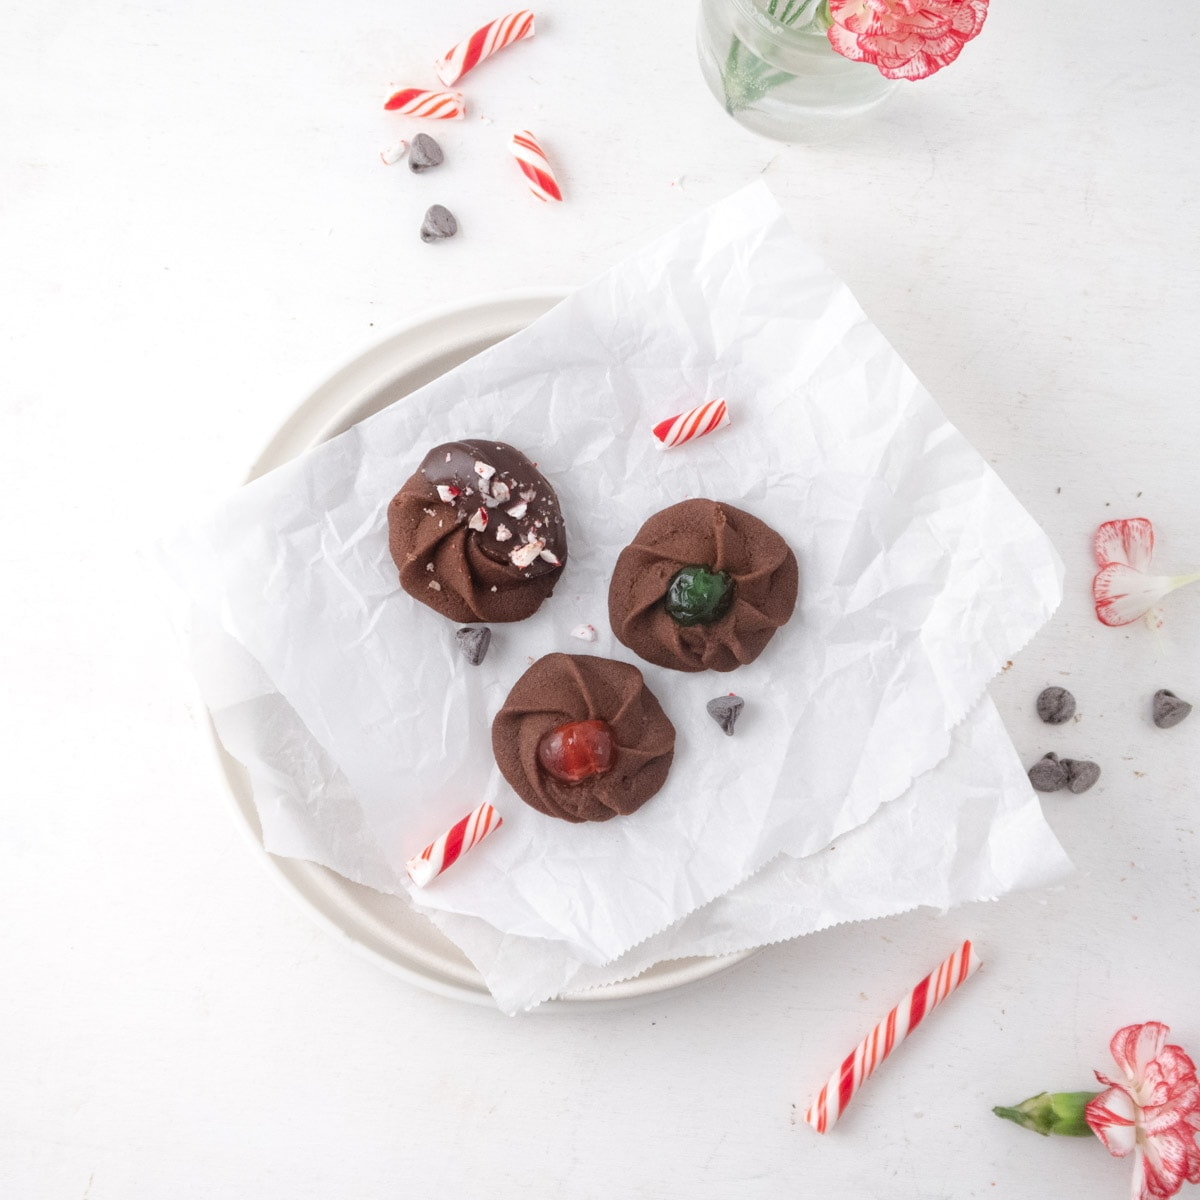 top view of 3 differently decorated chocolate butter cookies on a plate with some candy canes and flowers on the table